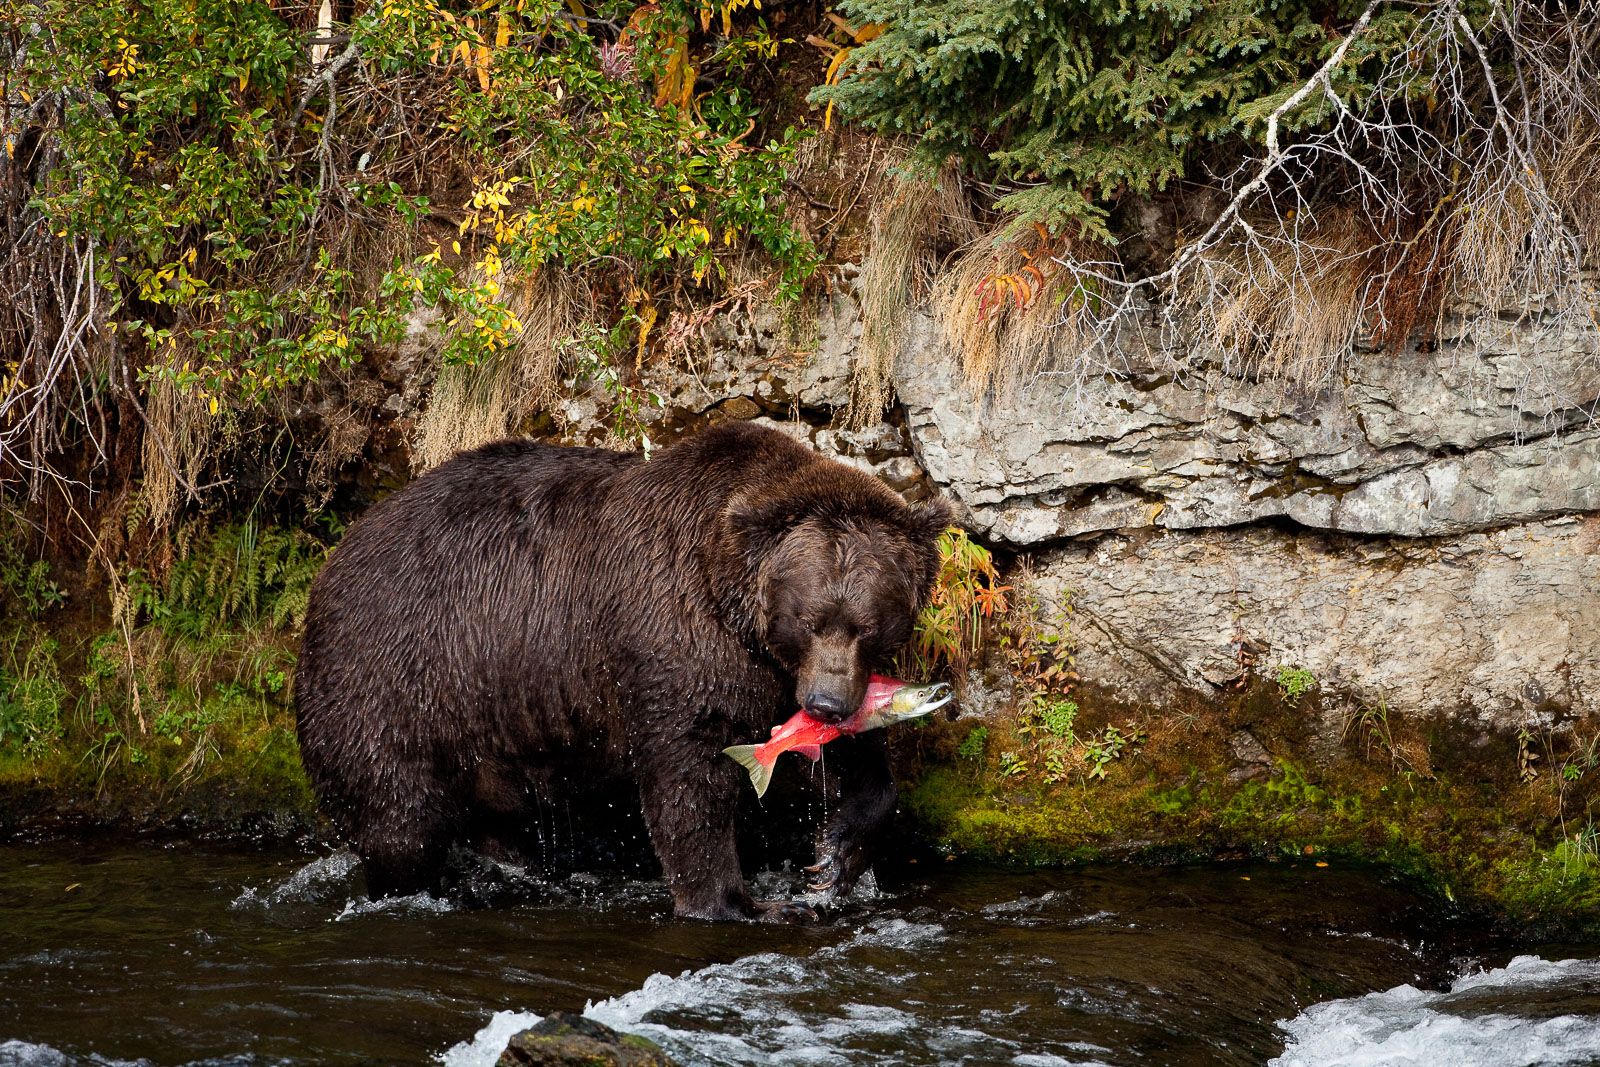 Sockeye Catch,Salmon,mouth,surviror,Wildlife,river,water,katmai national park,trees,green,horizontal, bear, grizzly, photo